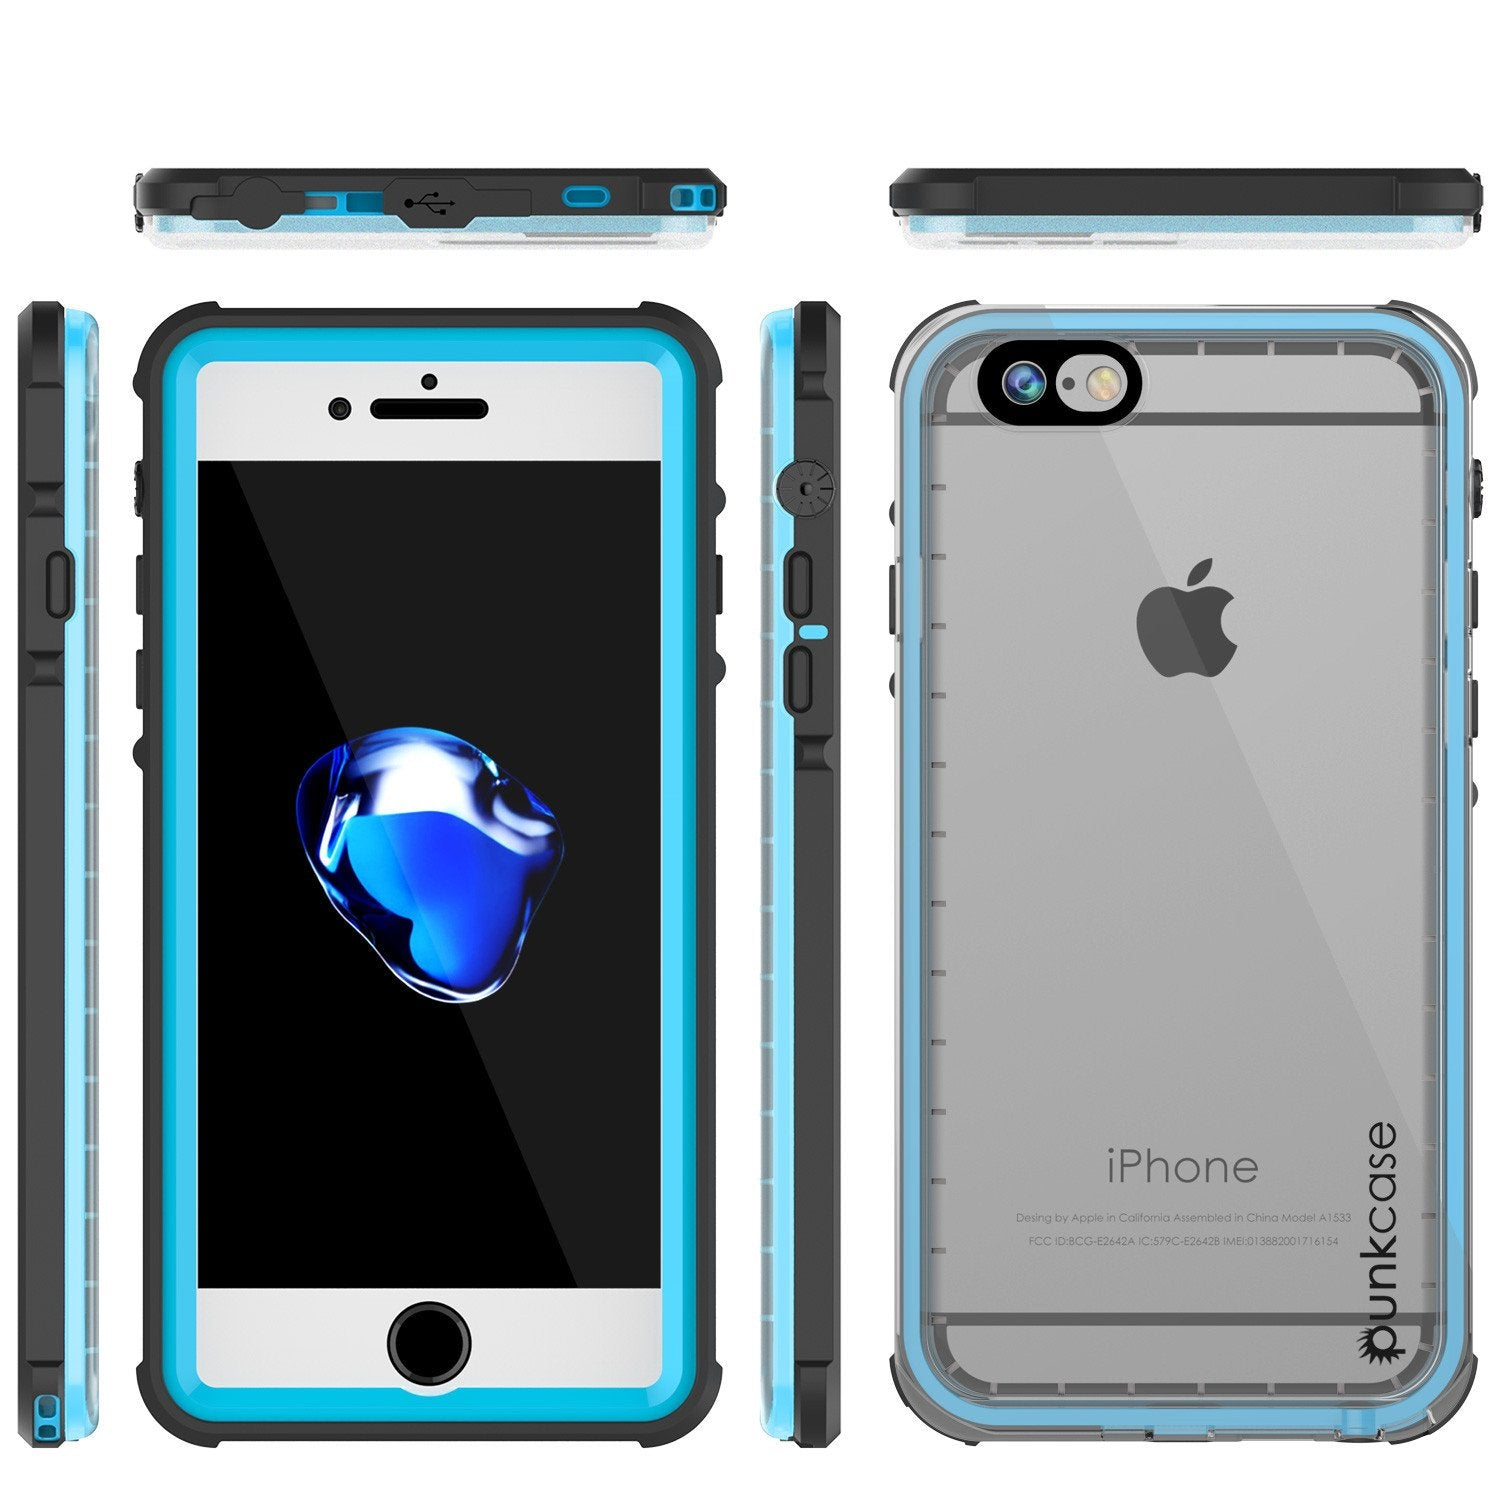 Apple iPhone 7 Waterproof Case, PUNKcase CRYSTAL Light Blue  W/ Attached Screen Protector  | Warranty